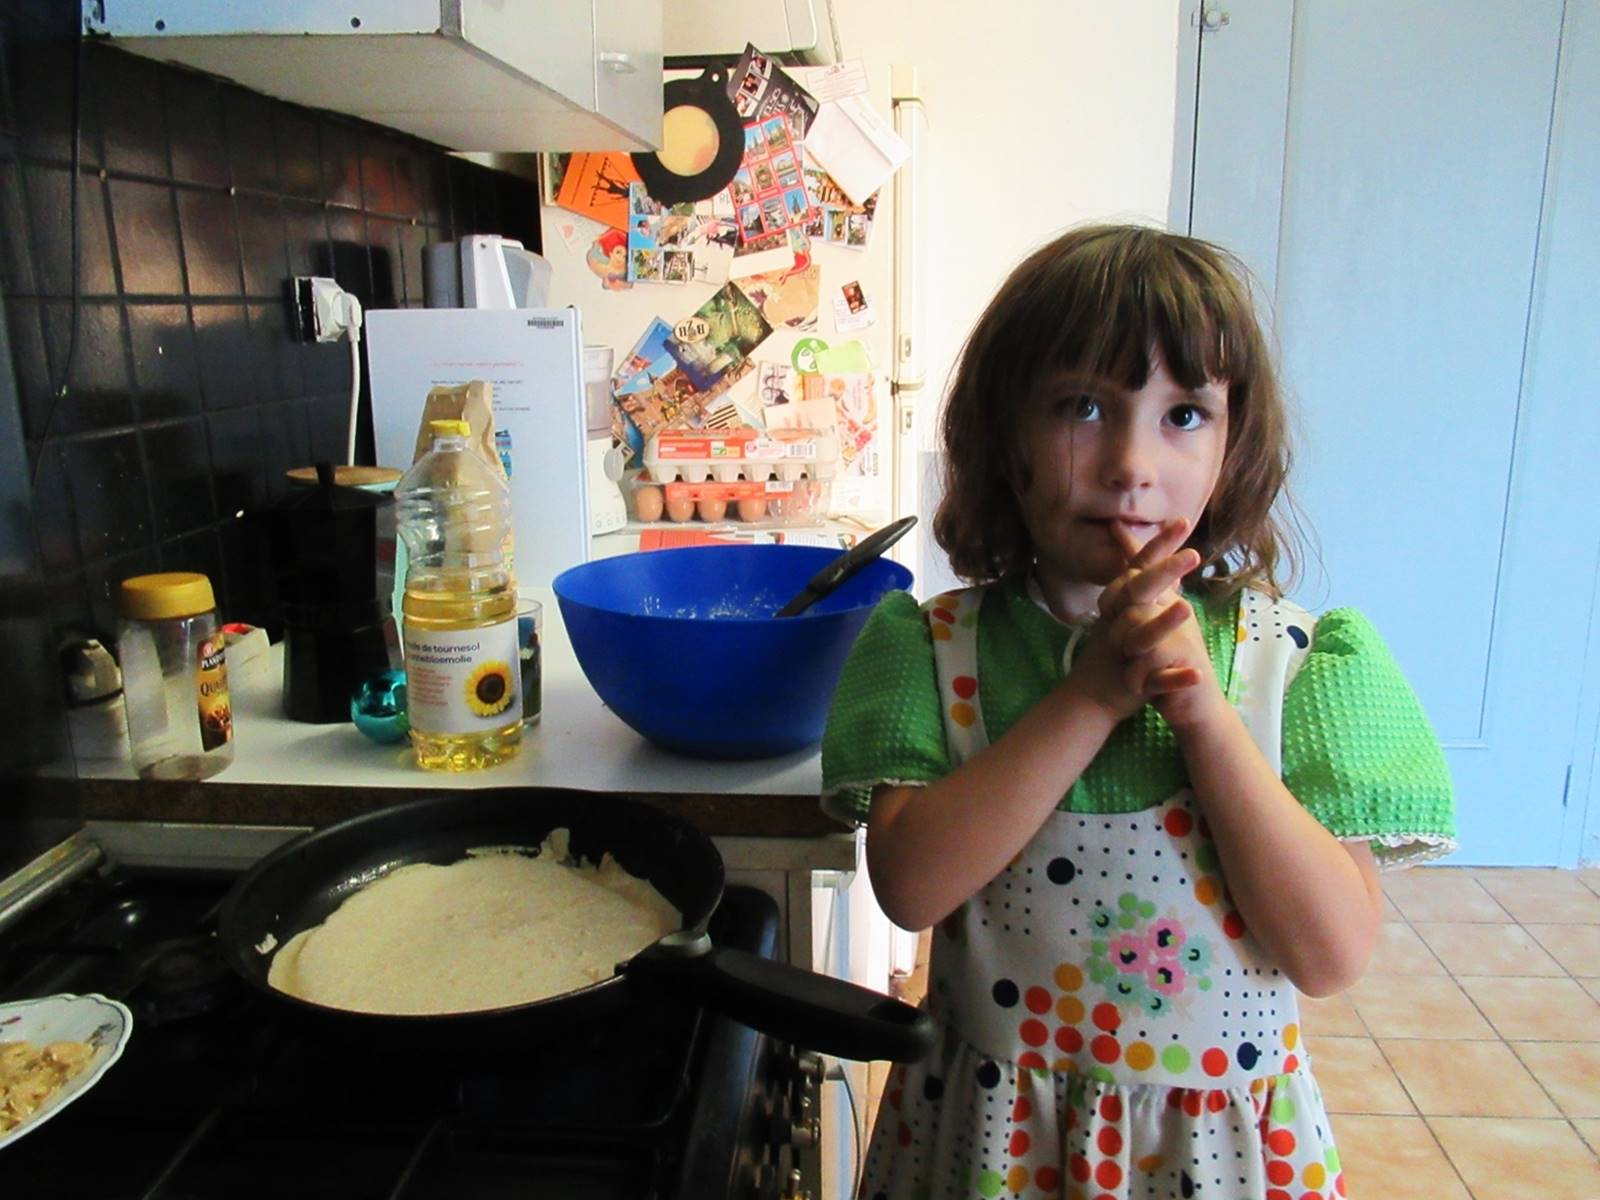 Recette bacon oeuf crepe ief 9